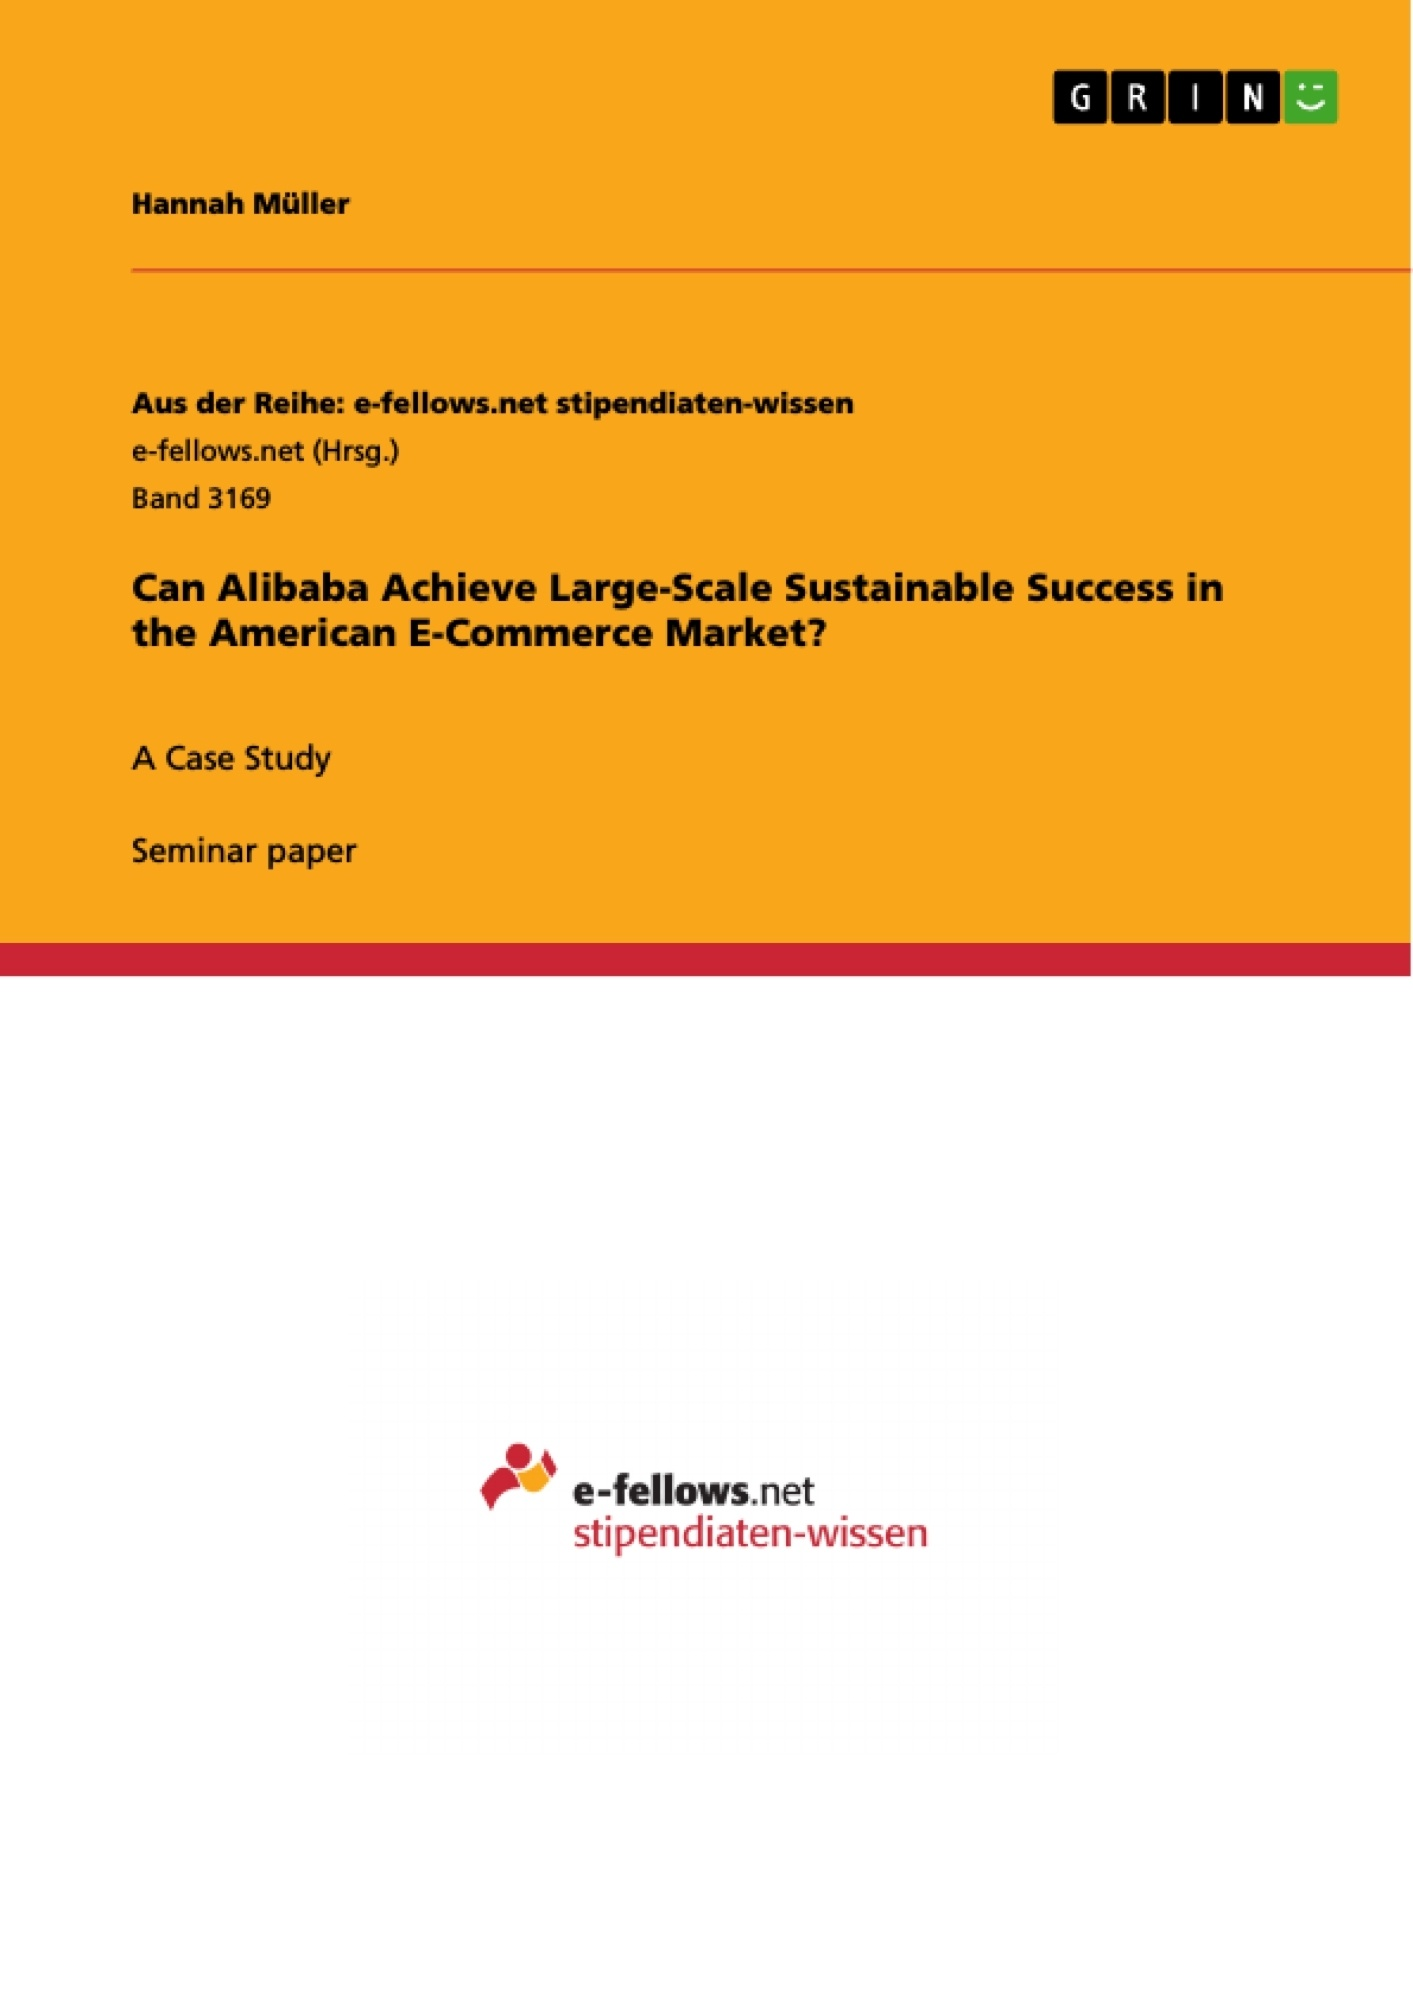 Title: Can Alibaba Achieve Large-Scale Sustainable Success in the American E-Commerce Market?